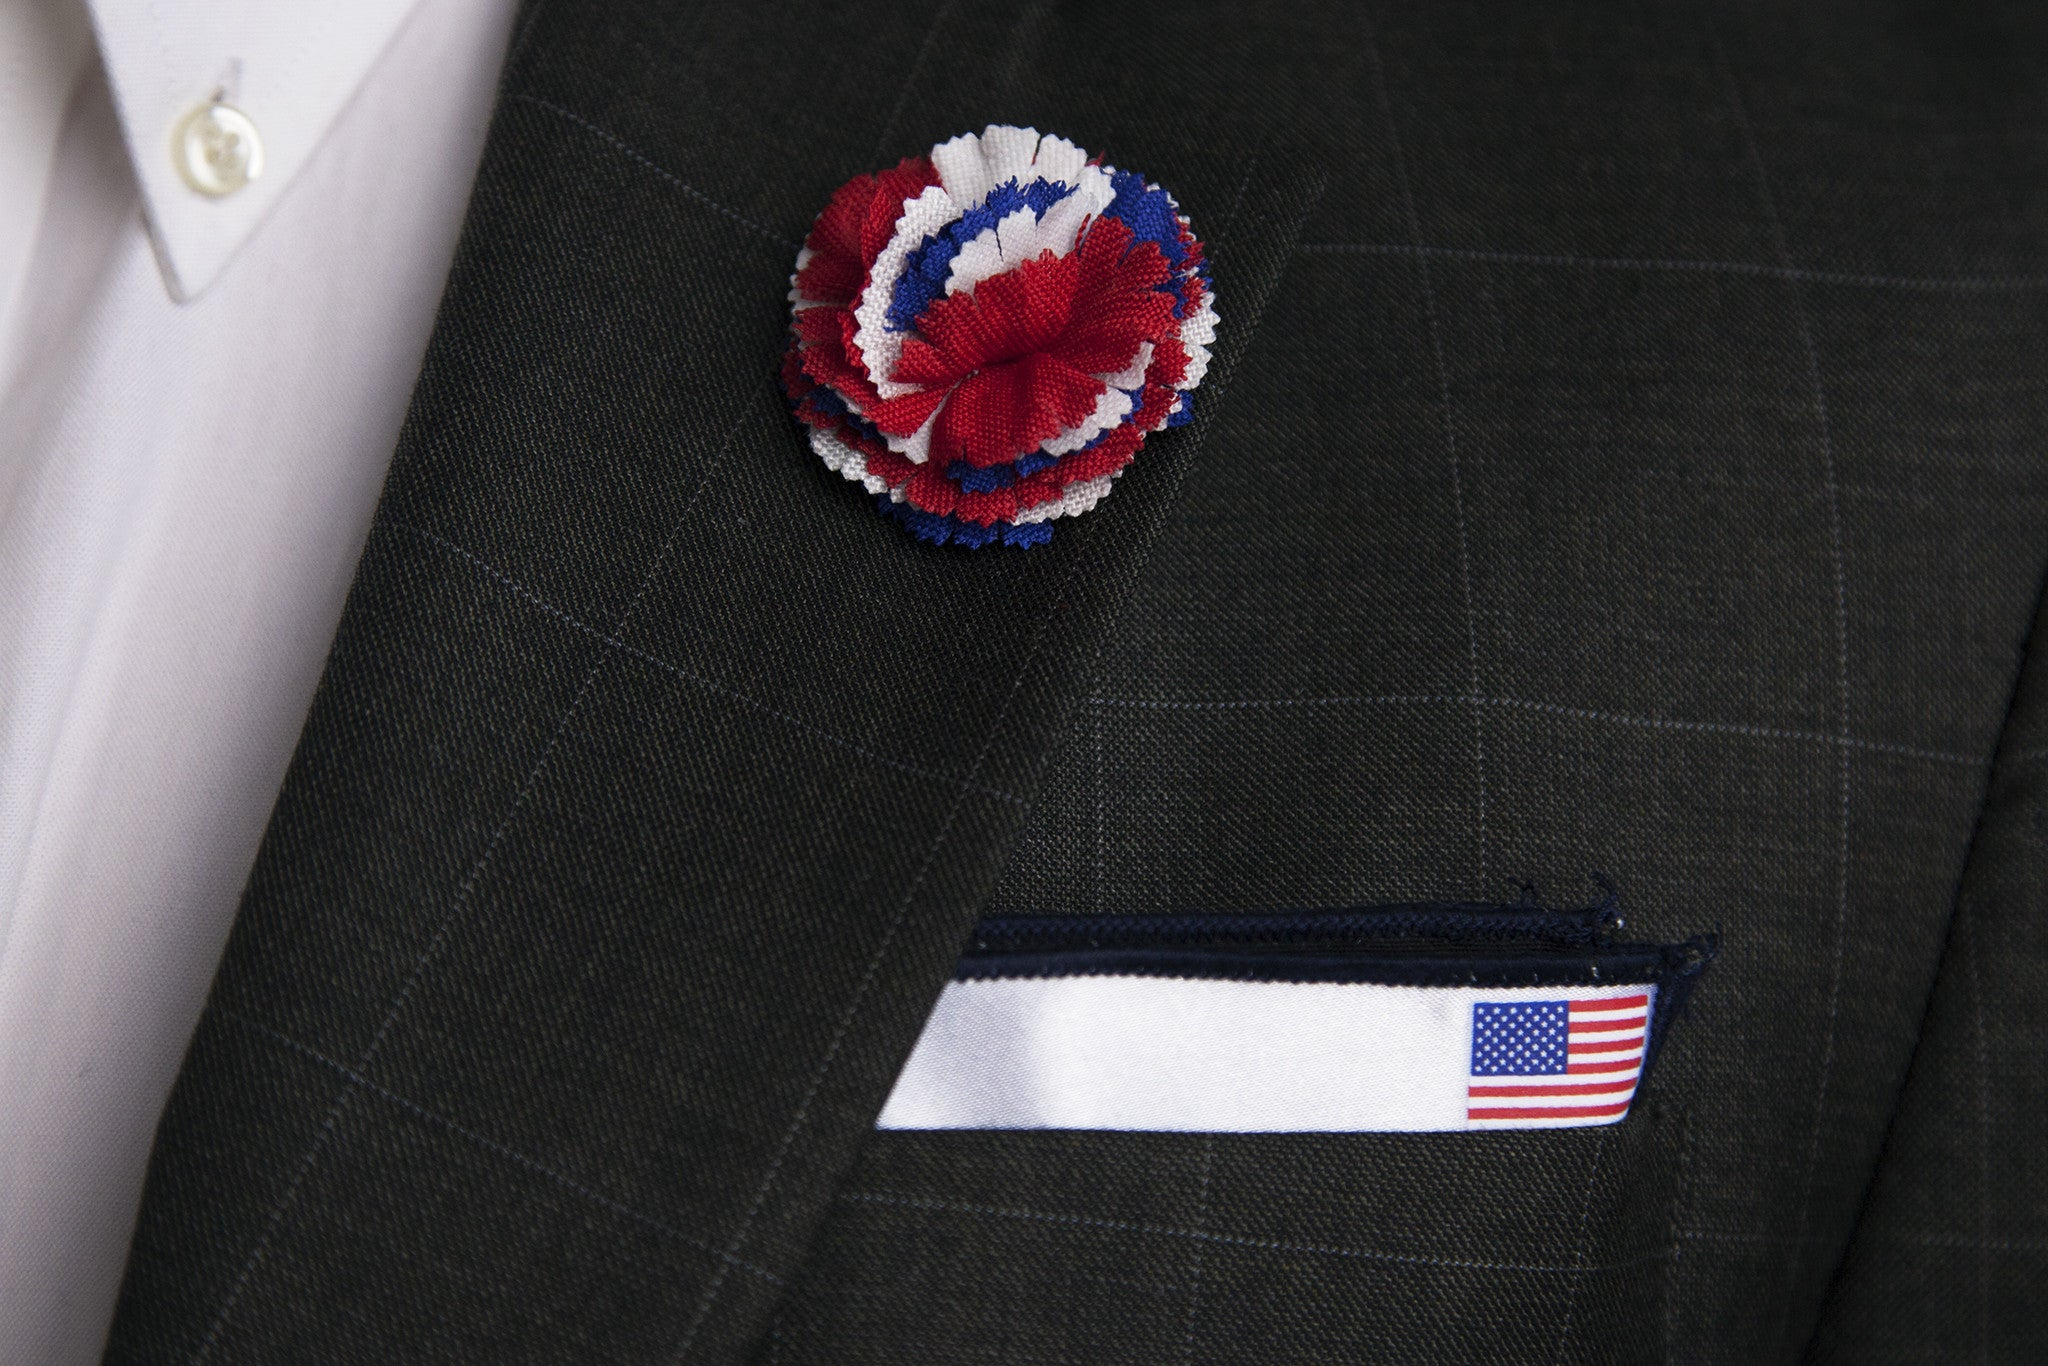 Red, White, and Blue Lapel Flower